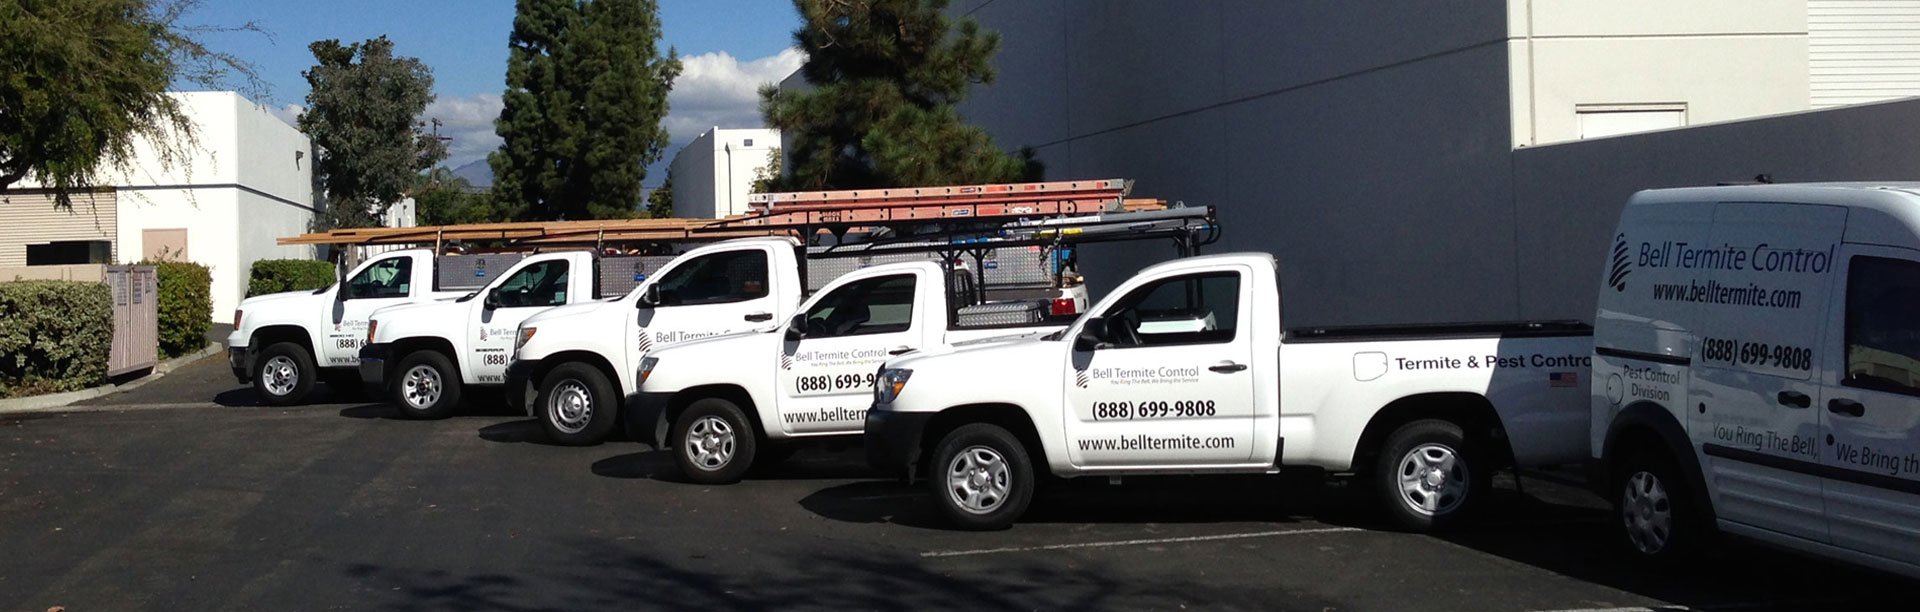 Free Termite Inspection in Rancho Cucamonga